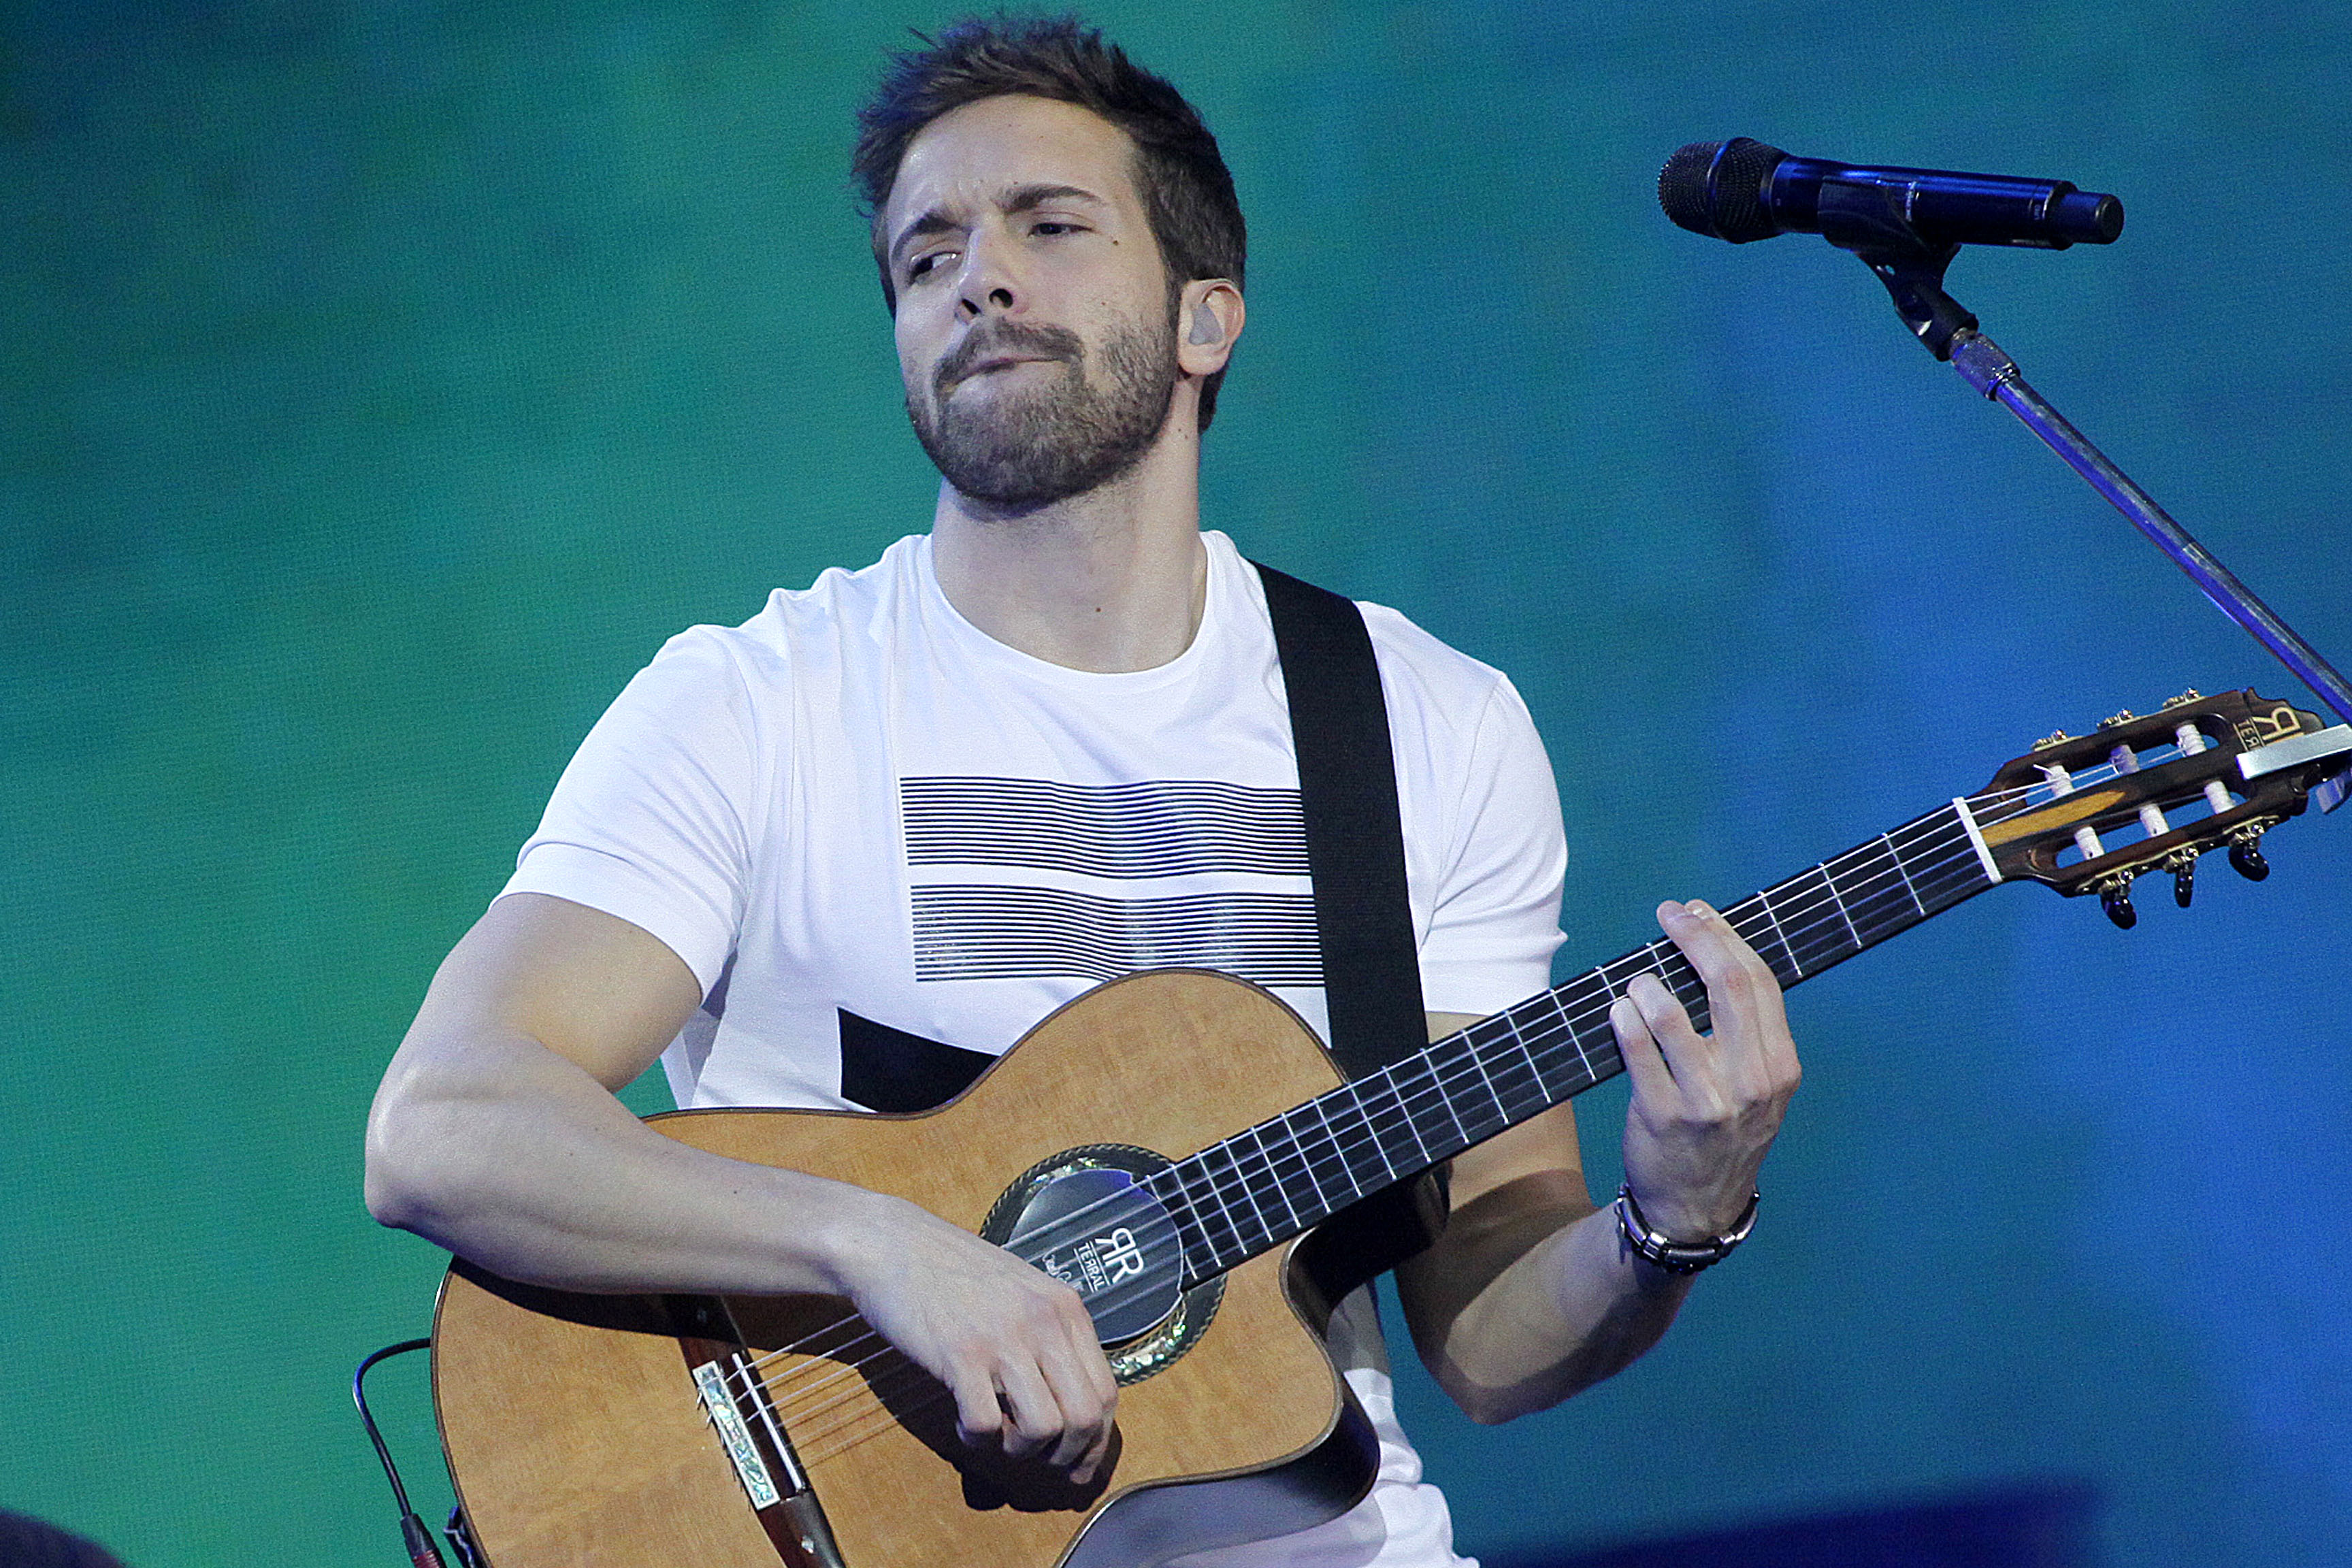 Spanish singer Pablo Alboran performs during Vina del Mar song Festival in Vina del Mar, Chile on February 26, 2016. AFP PHOTO / Aton Chile - Luis G. CollaO / AFP / ATON CHILE / LUIS G. COLLAO